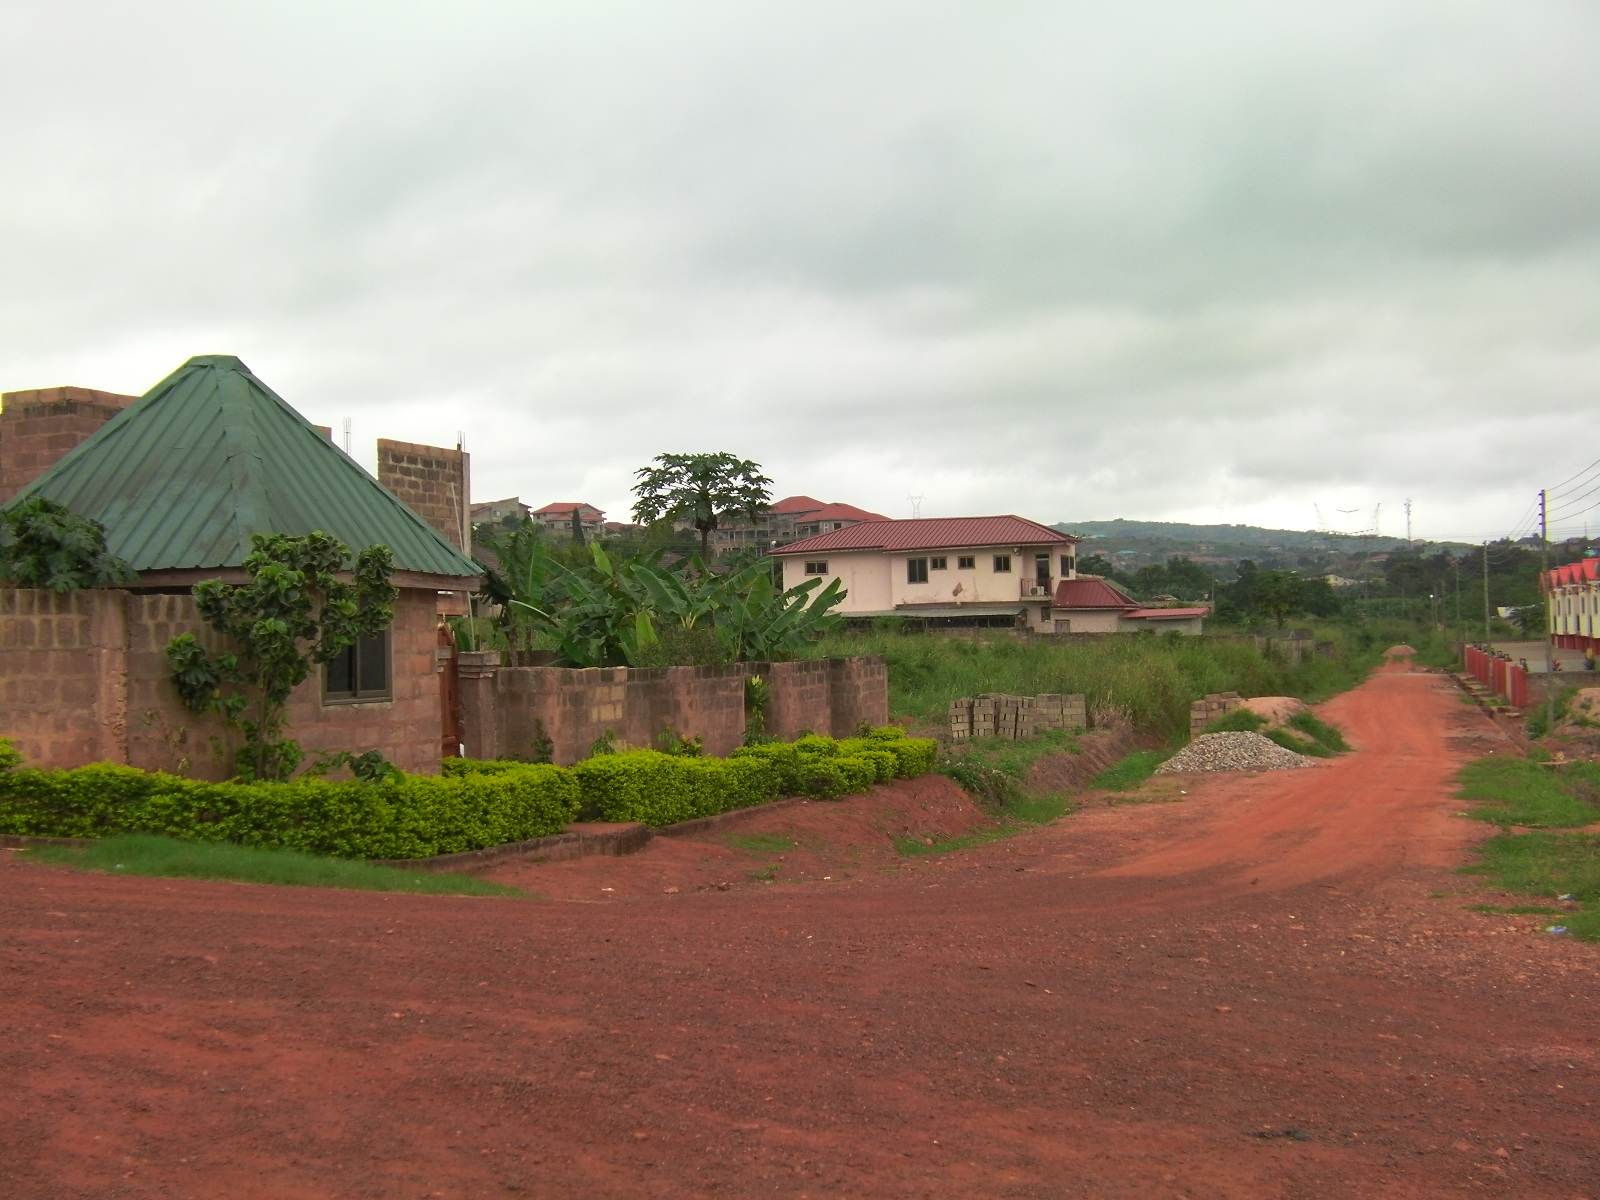 the roof above my head: Hello from Pokuase, Ghana